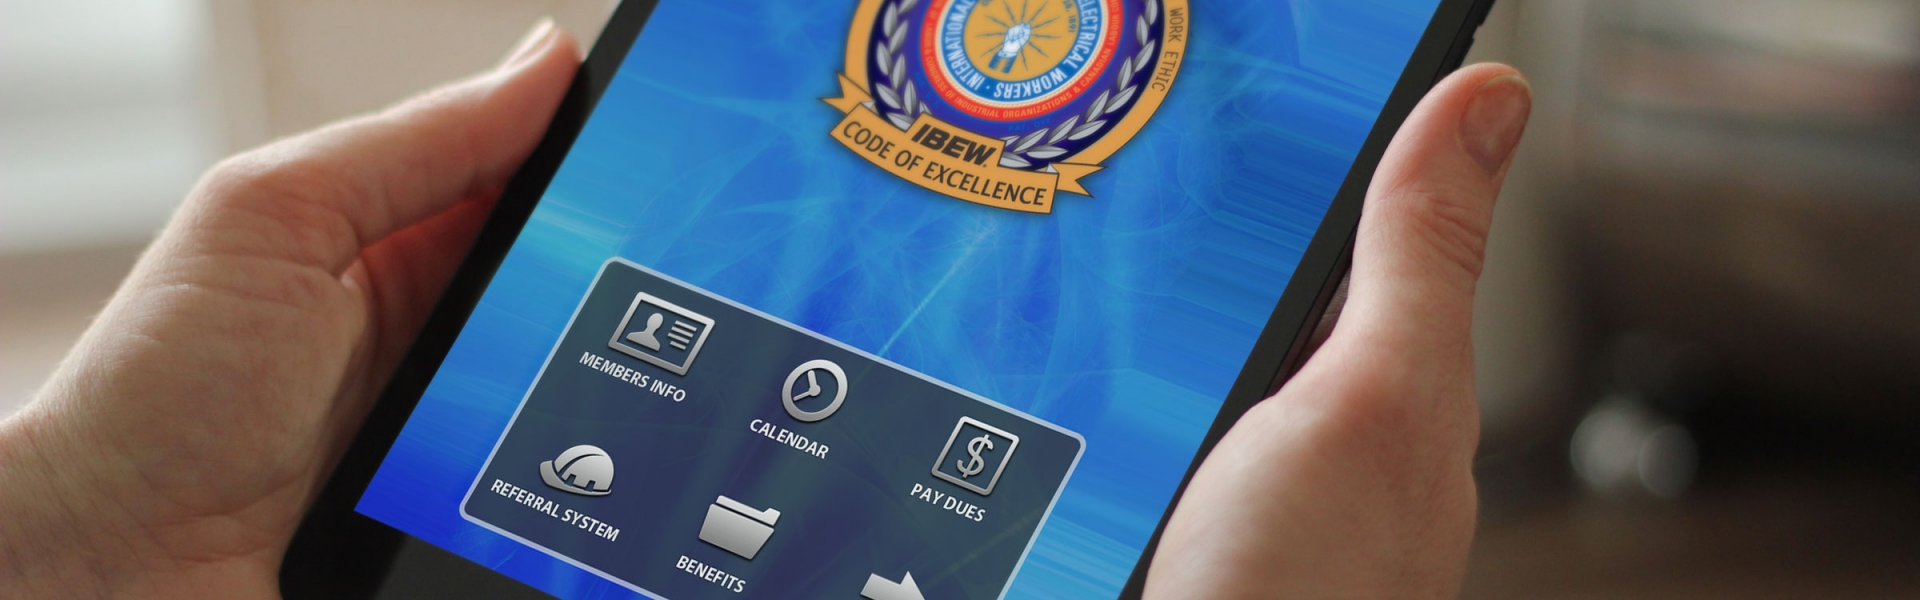 IBEW Local 22 Mobile Application Development + CMS Integration